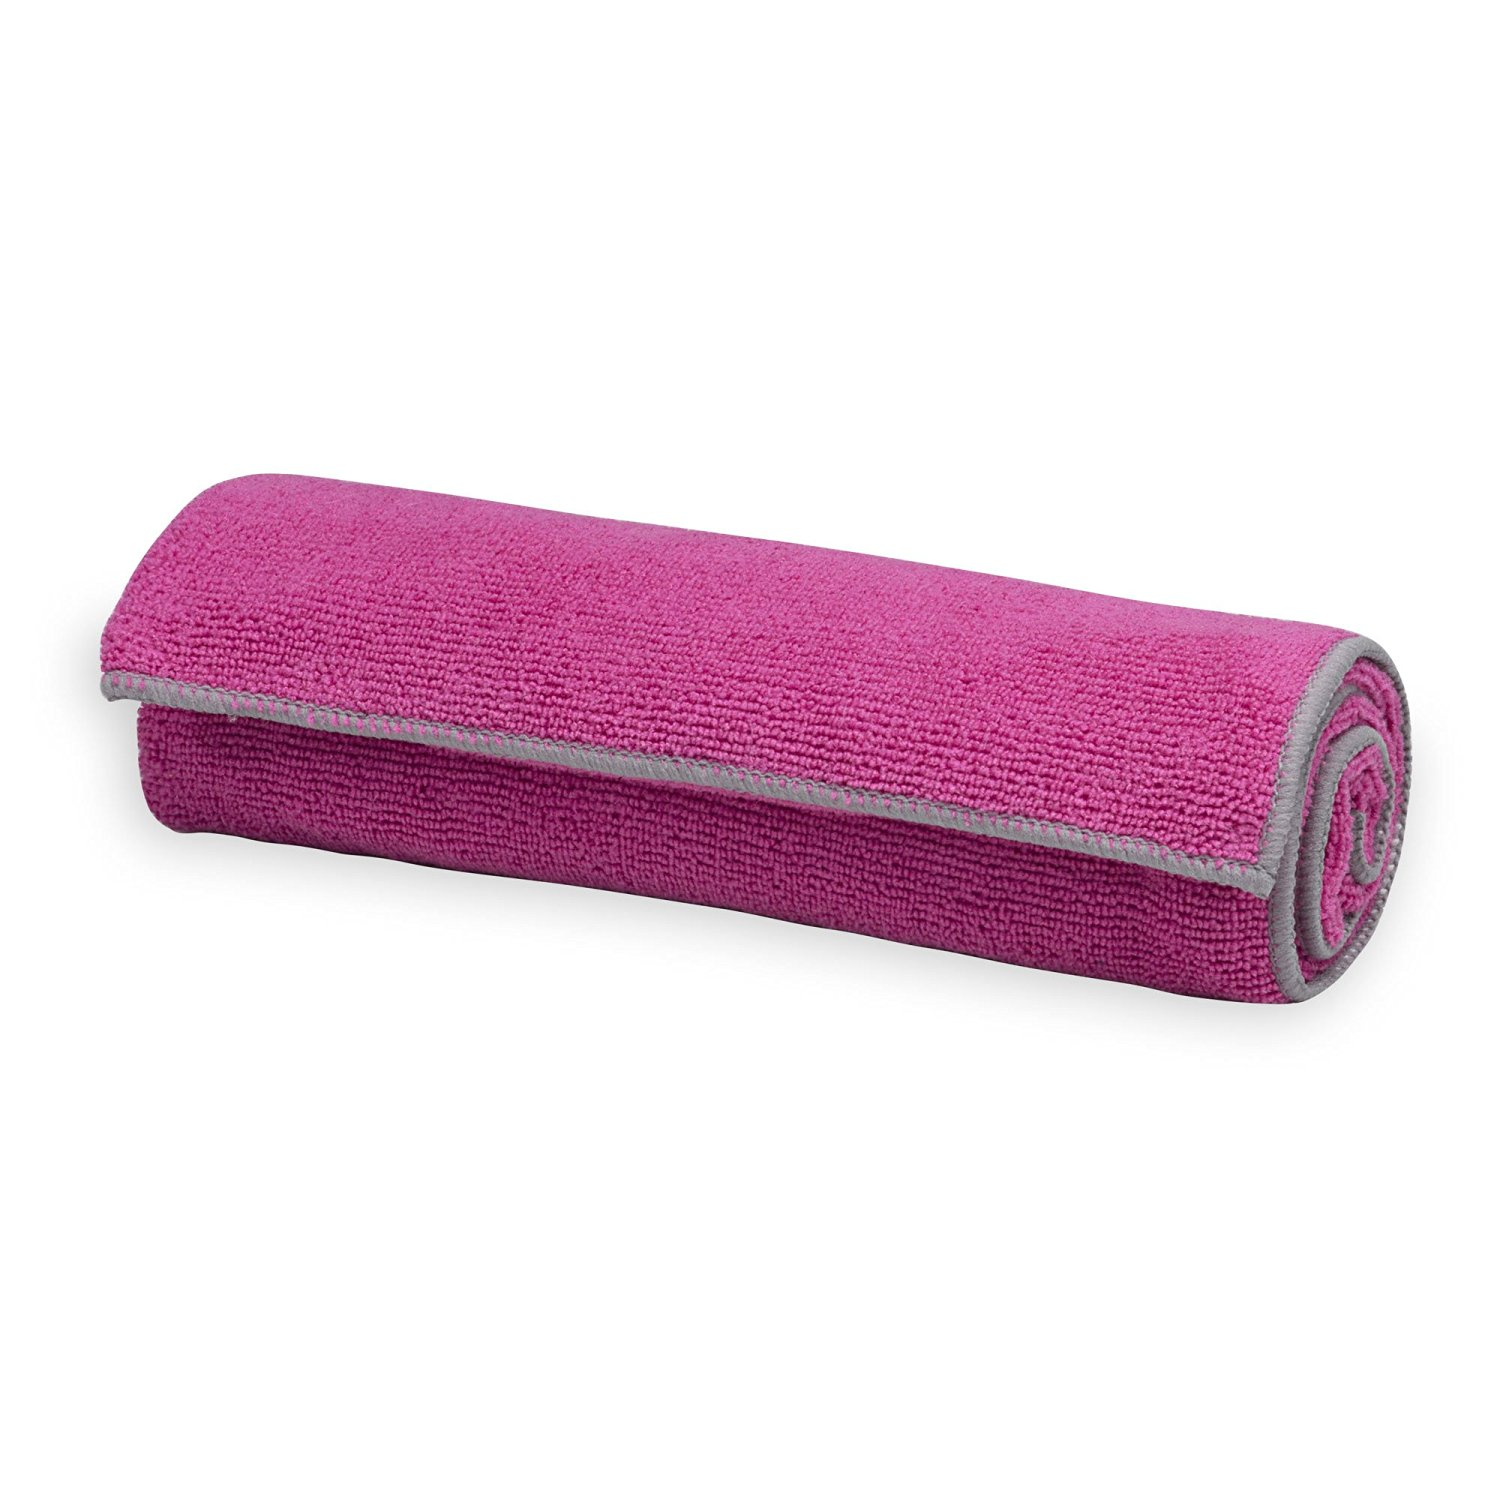 gaiam thirsty yoga towel fuchsia/grey